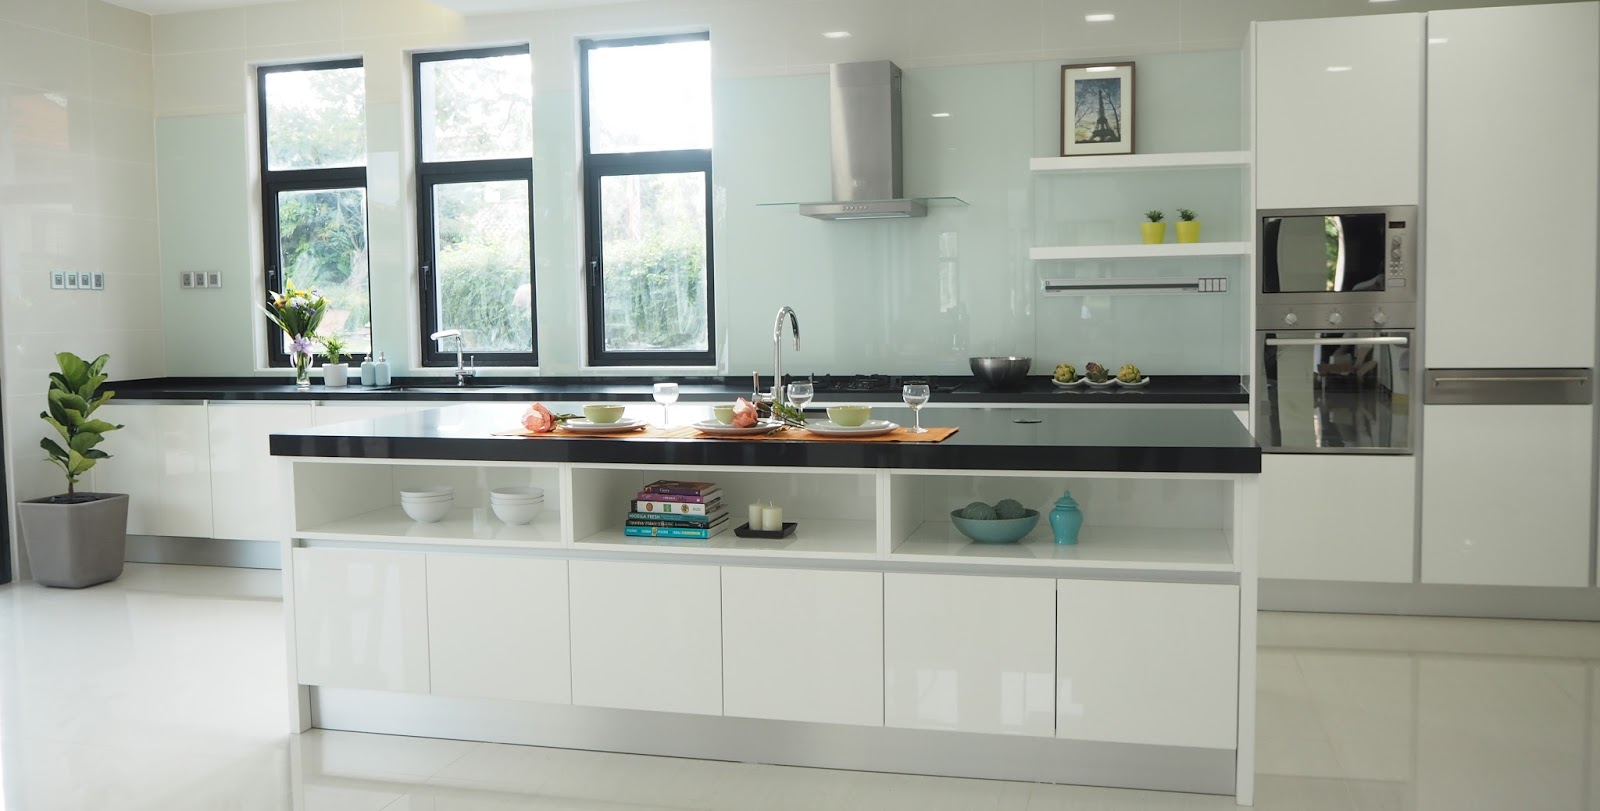 Meridian interior design and kitchen design in kuala for Linear kitchen design